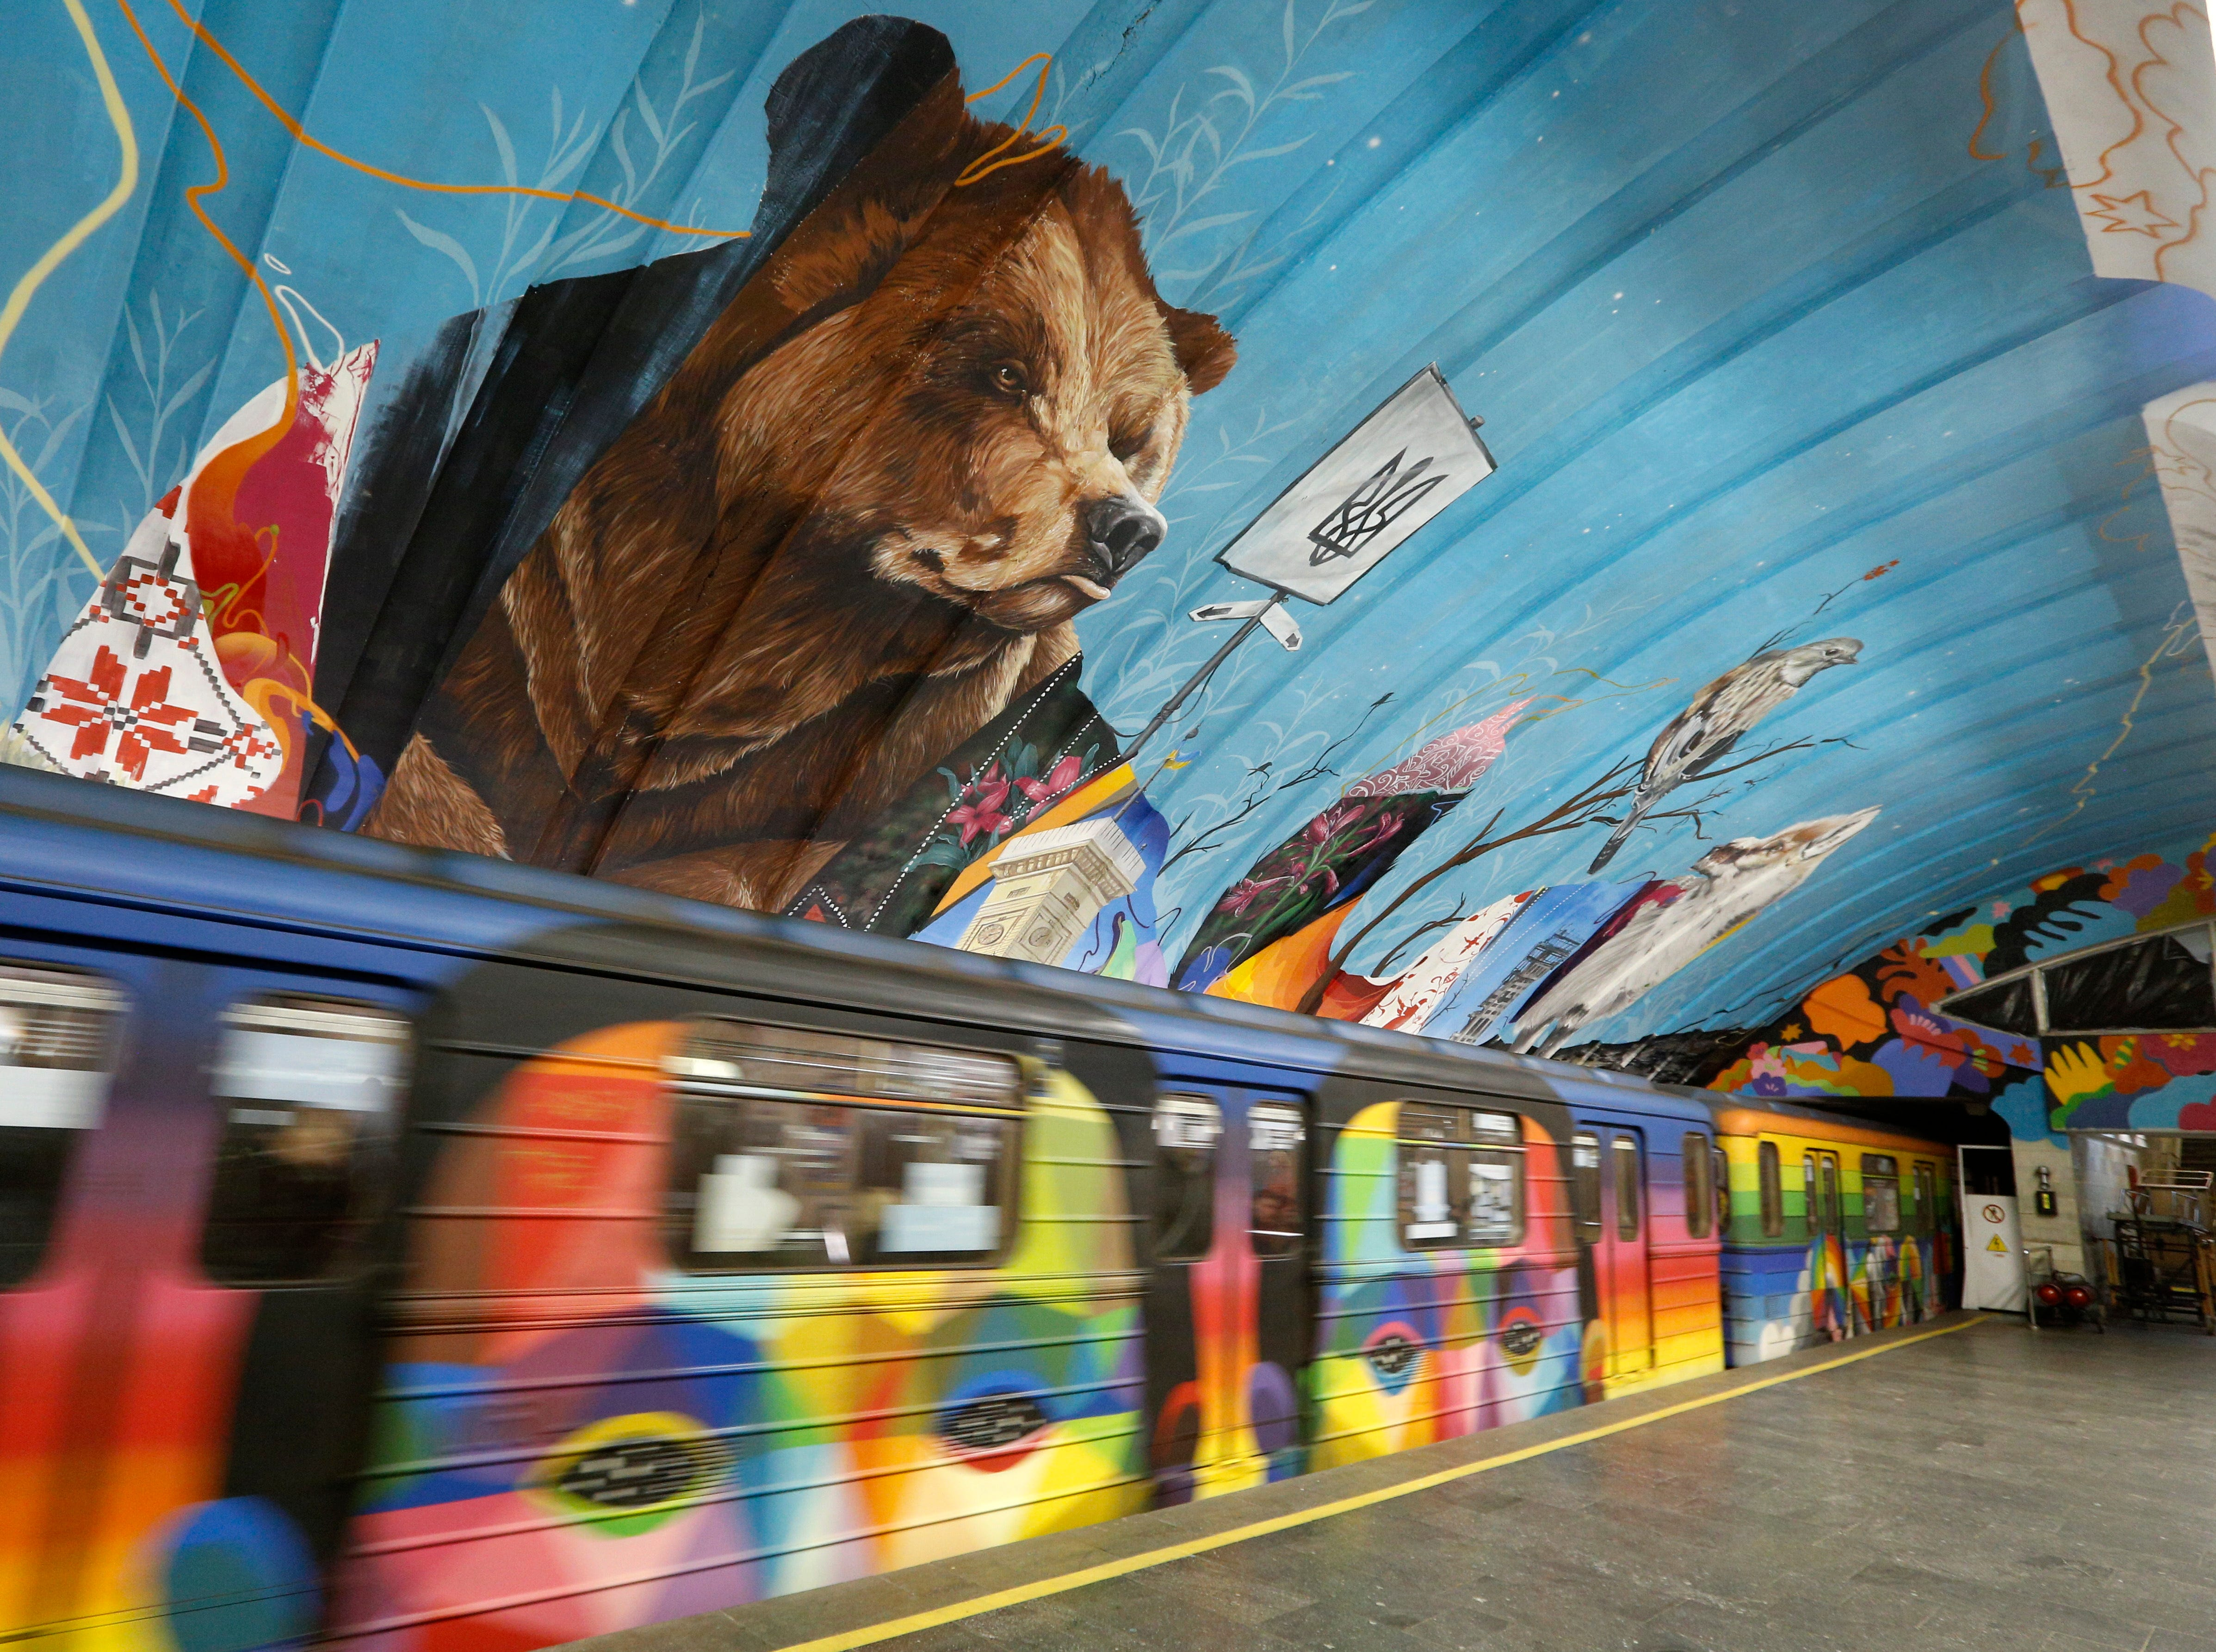 """A train passes by a mural depicting a bear in an underground metro station in Kiev, Ukraine, Tuesday, Dec. 11, 2018. Eight artists, including Apollo Tores from Brazil and Matthew Dawn from Belgium, have been performing an artist project called """"More Than Us"""" that reflects their personal concept on life in Ukraine."""